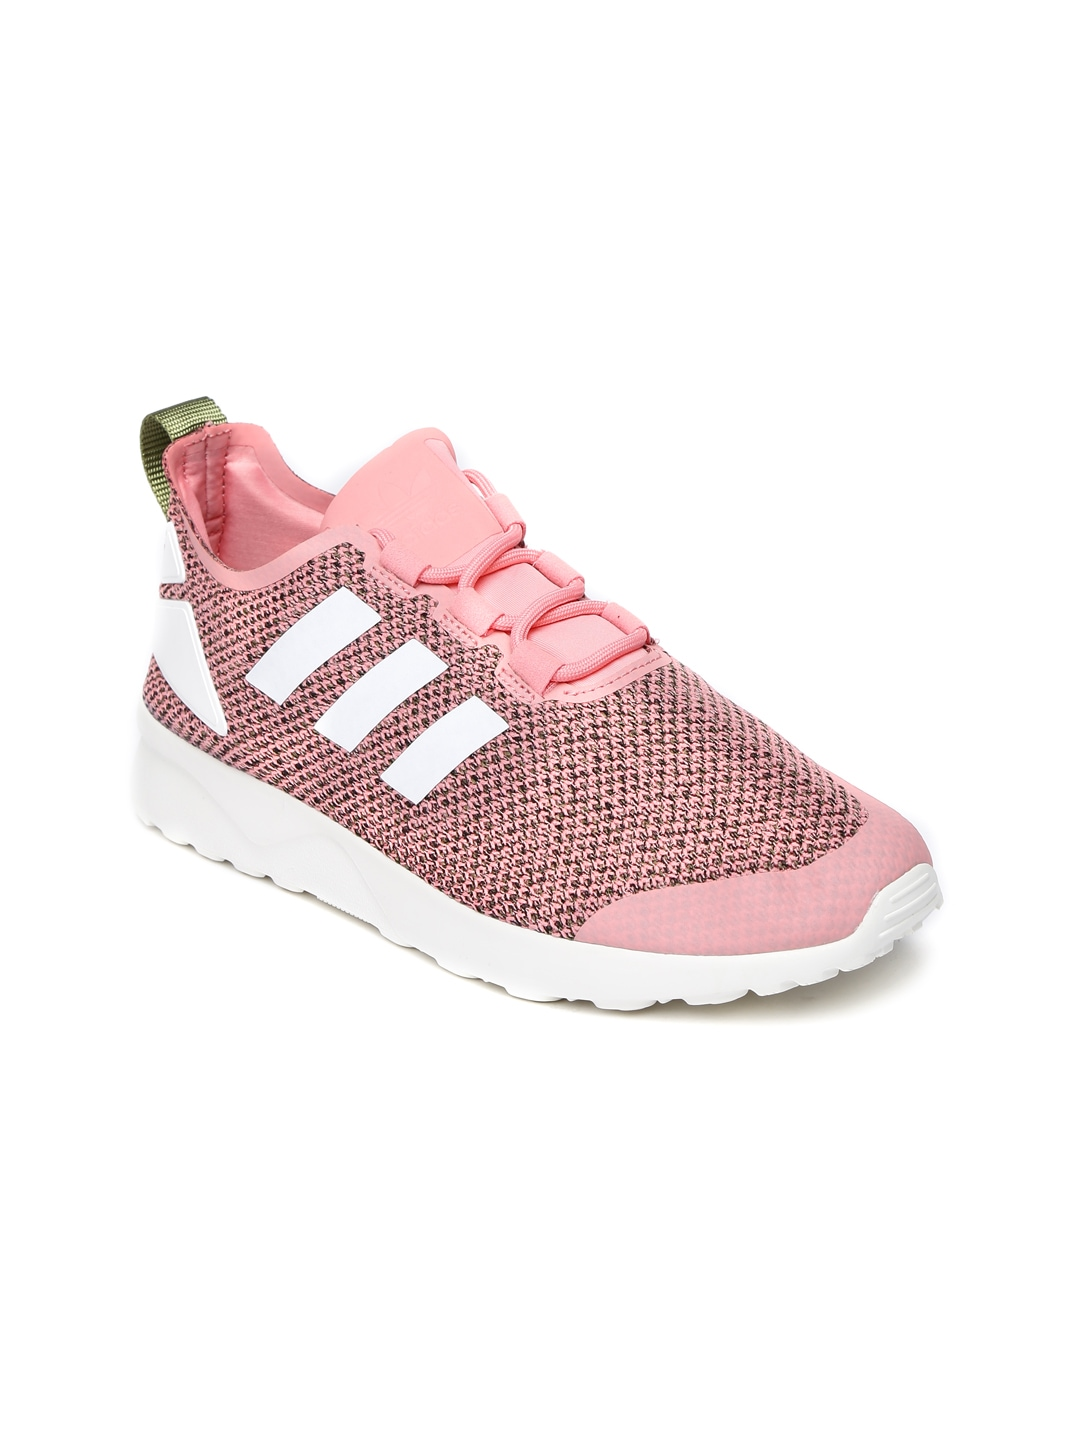 Womens Zx Flux Adv Verve W Running Shoes adidas